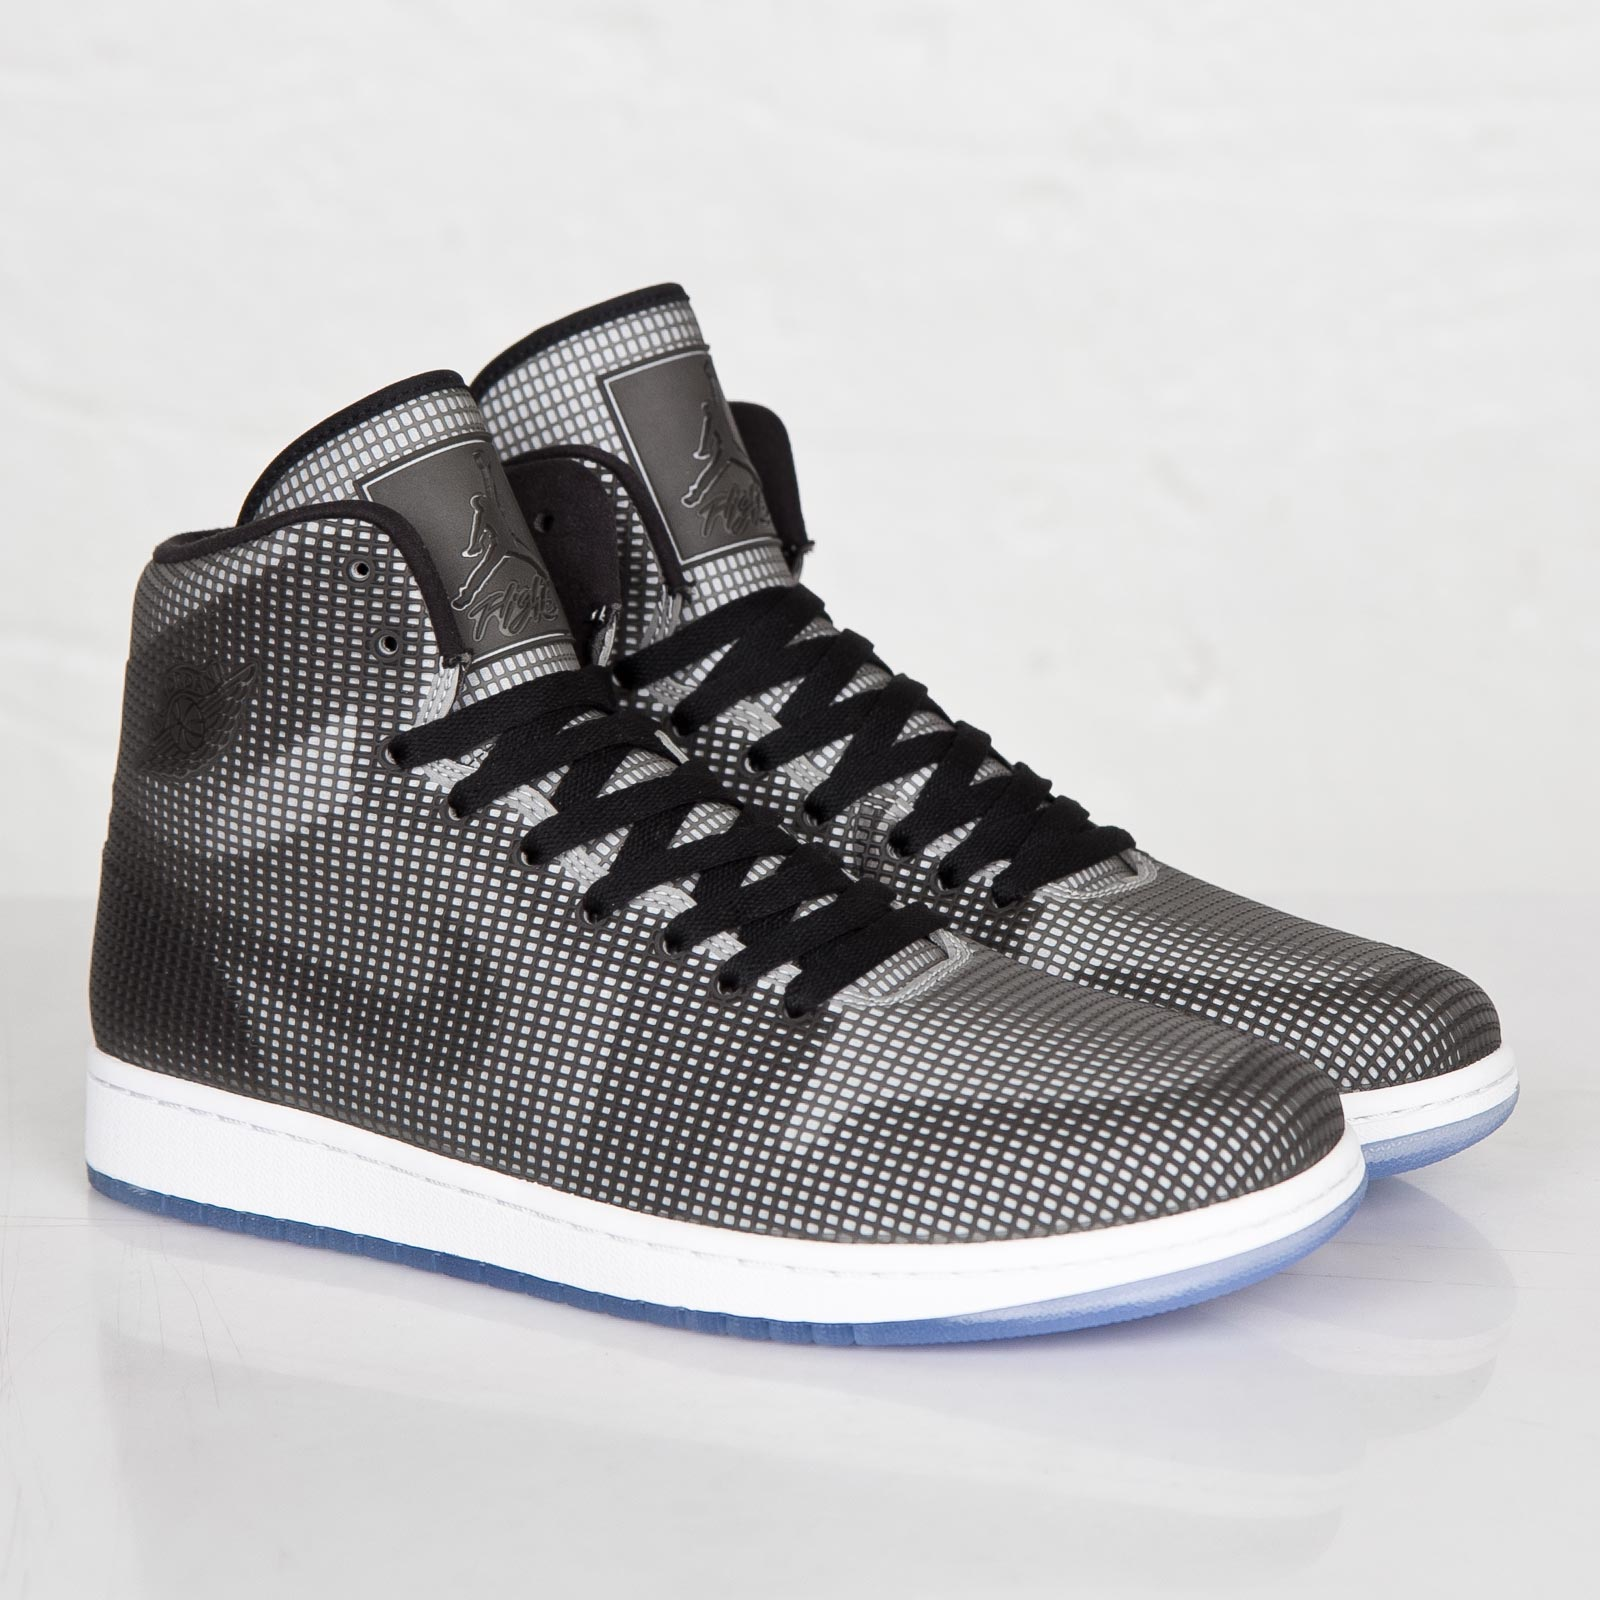 Jordan Brand Air Jordan 4Lab1 677690 012 Sneakersnstuff